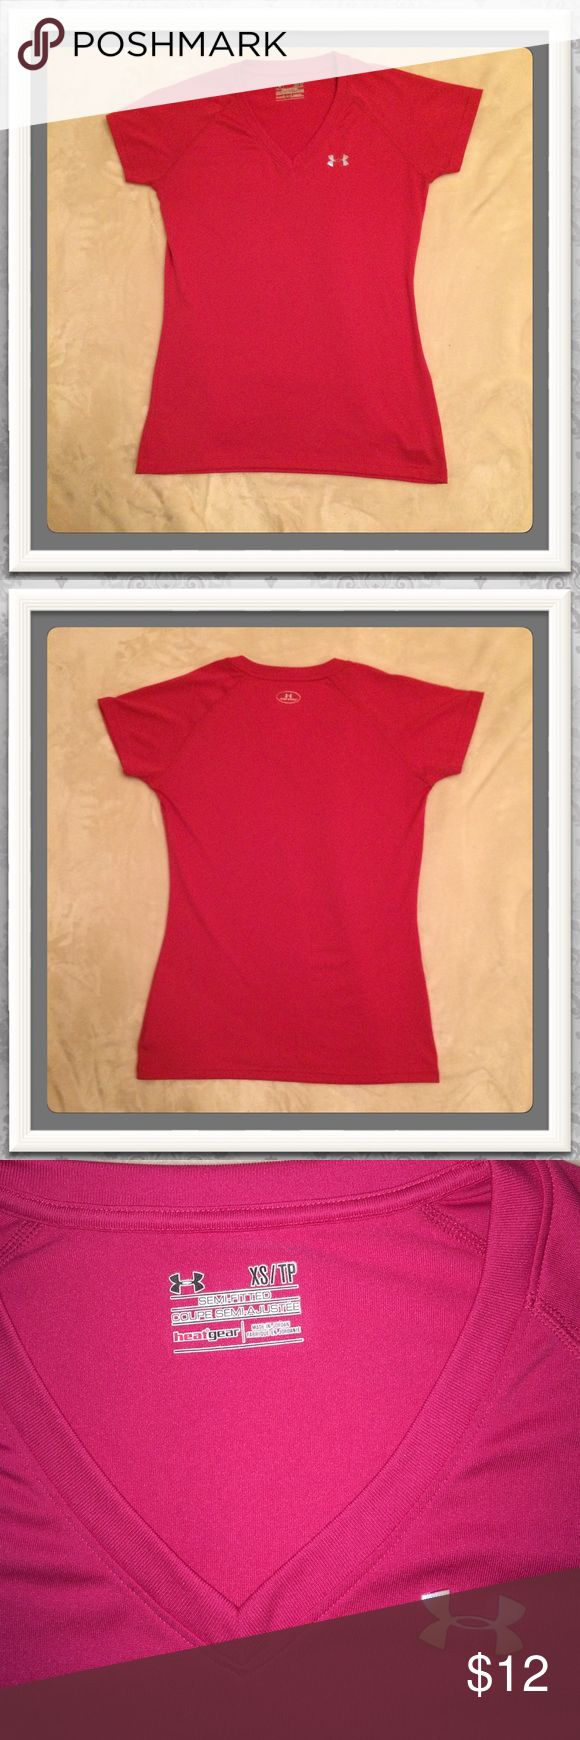 Women's Under Armour Tech Tee Under Armour Tech Tee. Size xsmall/small Good condition! Great for the gym & stylish enough to wear out as well! Free U.A headband of your choice while supplies last! Please see listing in my closet ☺️ ✨ Special Repeat Customer Discount Available!!! ✨ Under Armour Tops Tees - Short Sleeve